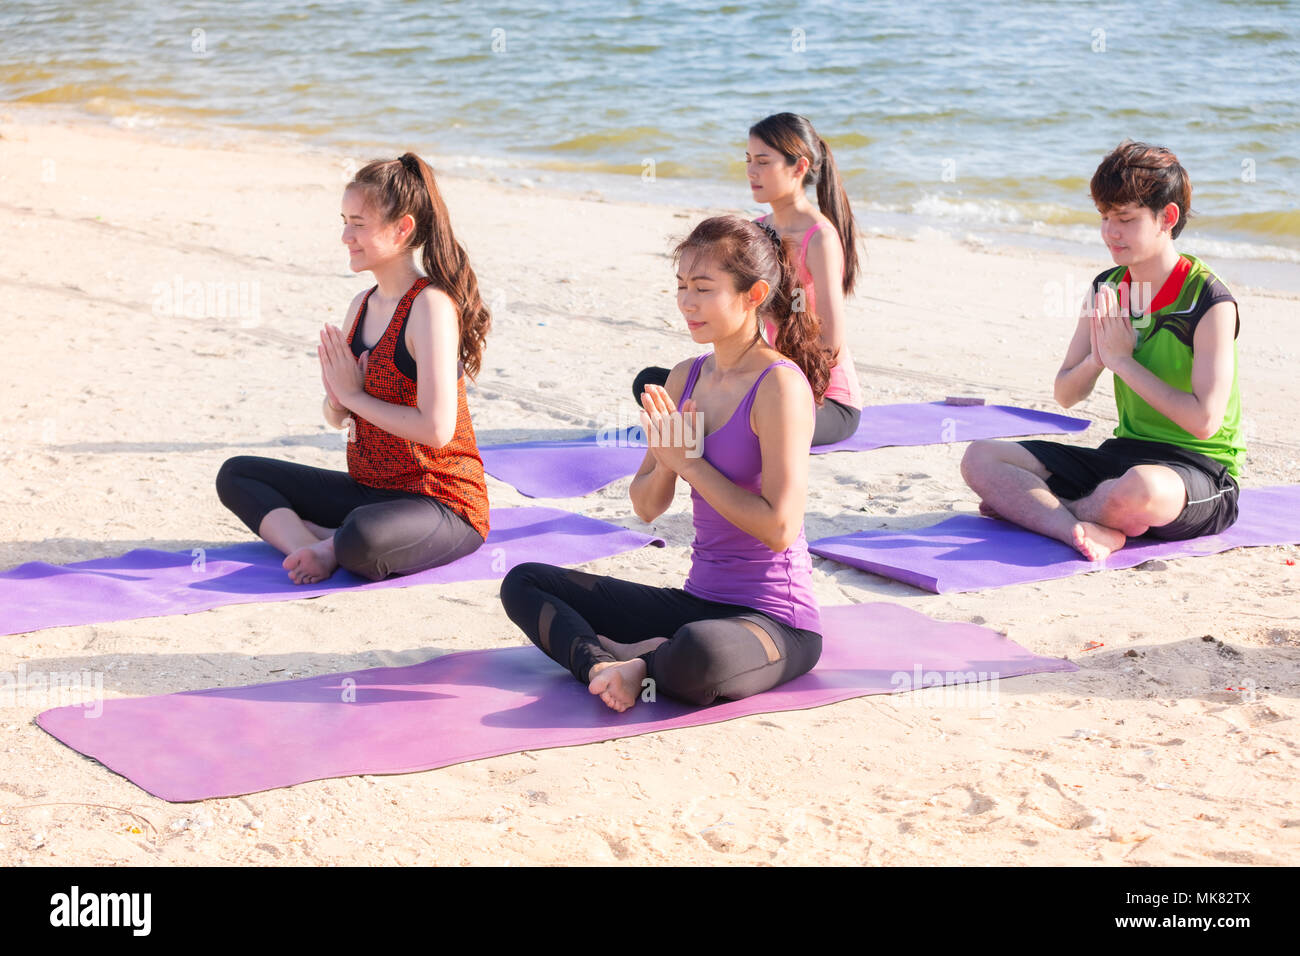 Yoga class at sea beach in sunny day ,Group of people doing namaste pose with clam relax emotion,Meditation pose,Wellness and Healthy balance lifestyl - Stock Image